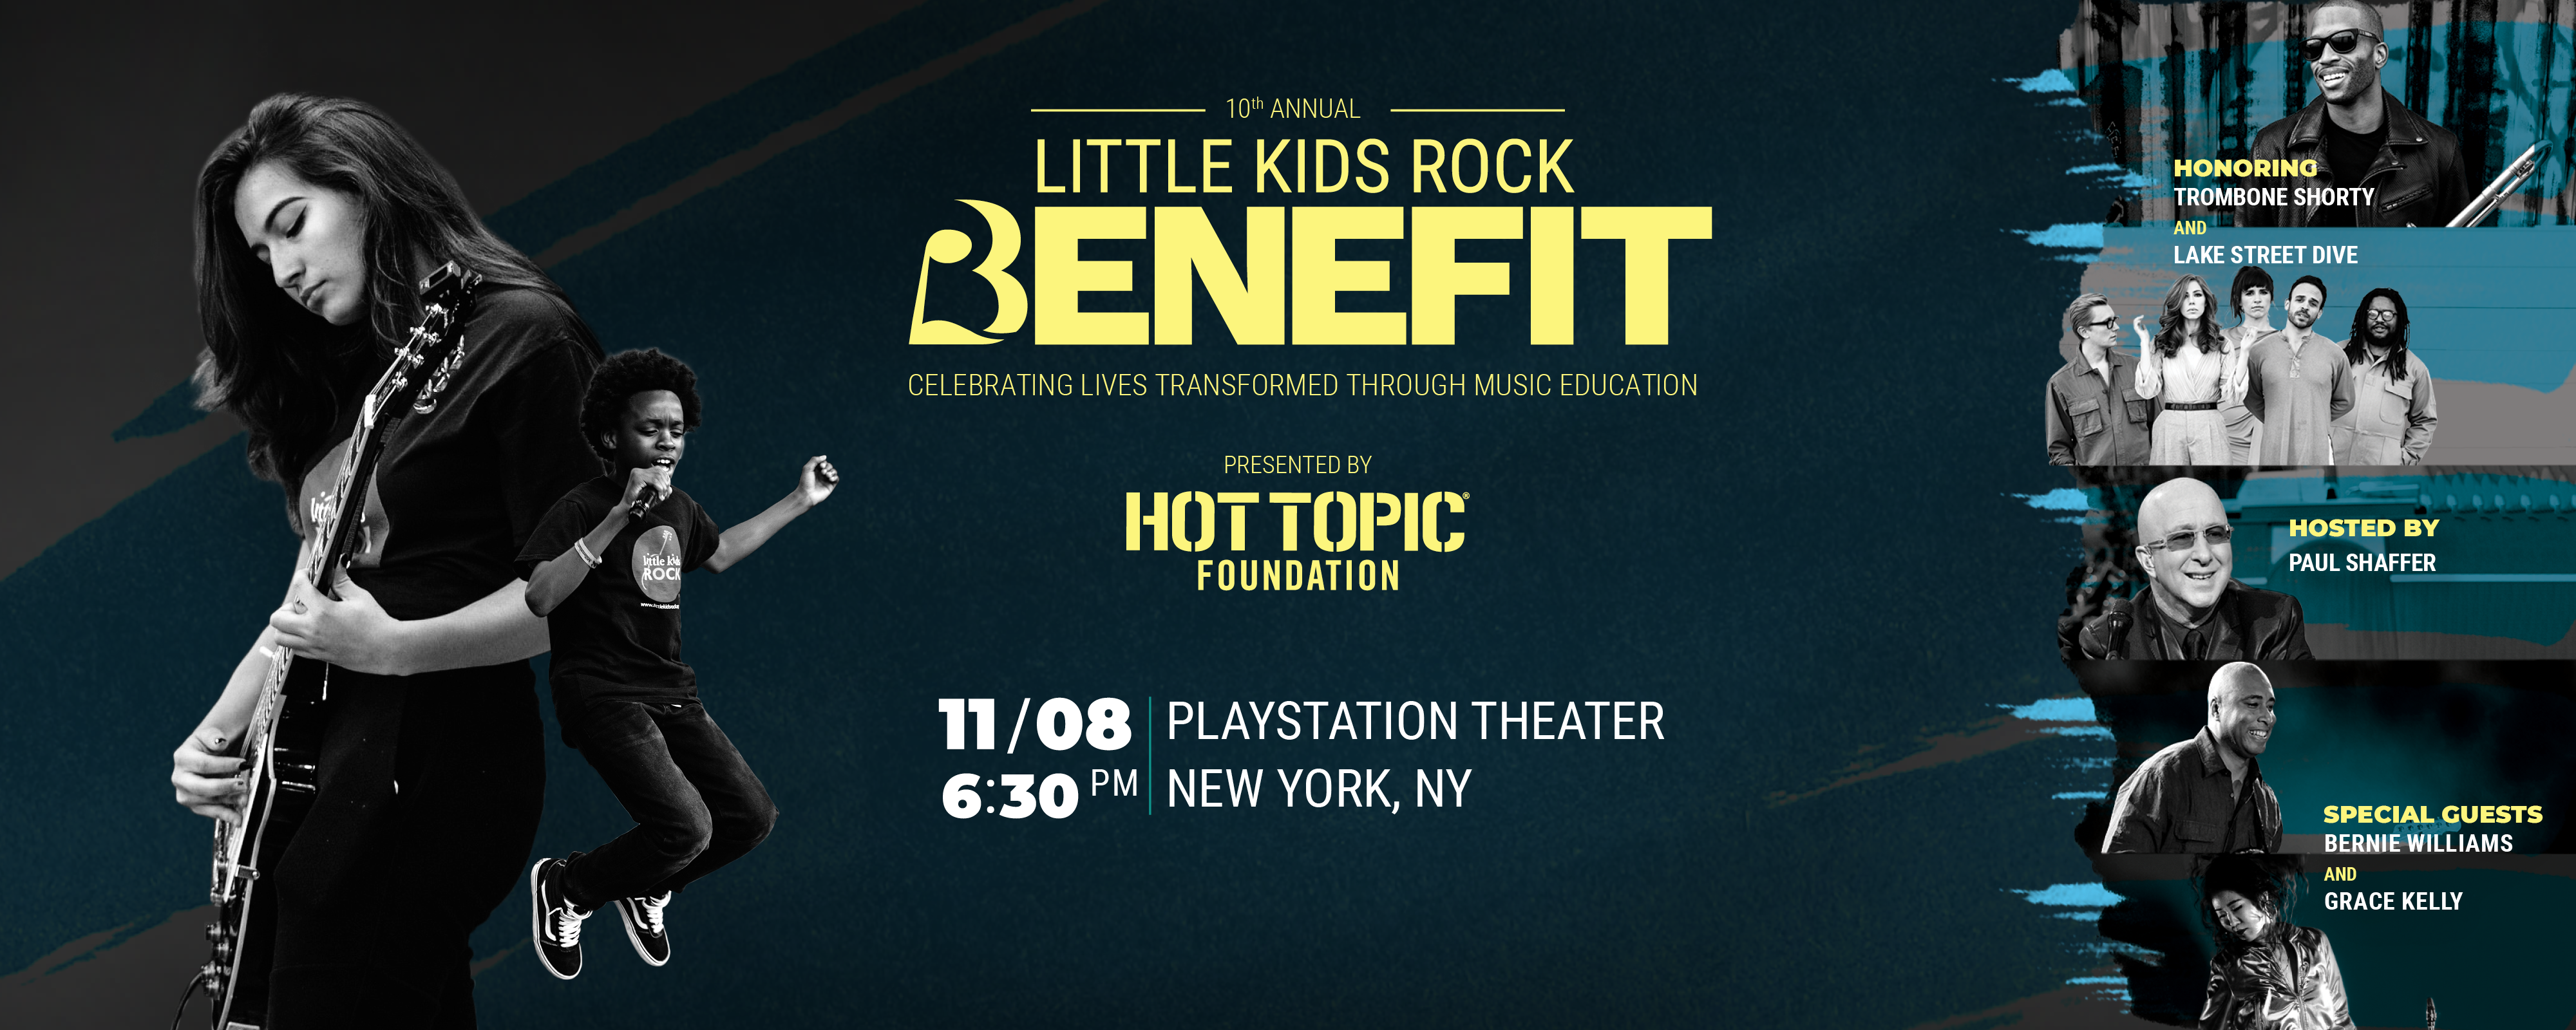 November 8, 2018 - 10th Annual Little Kids Rock Benefit